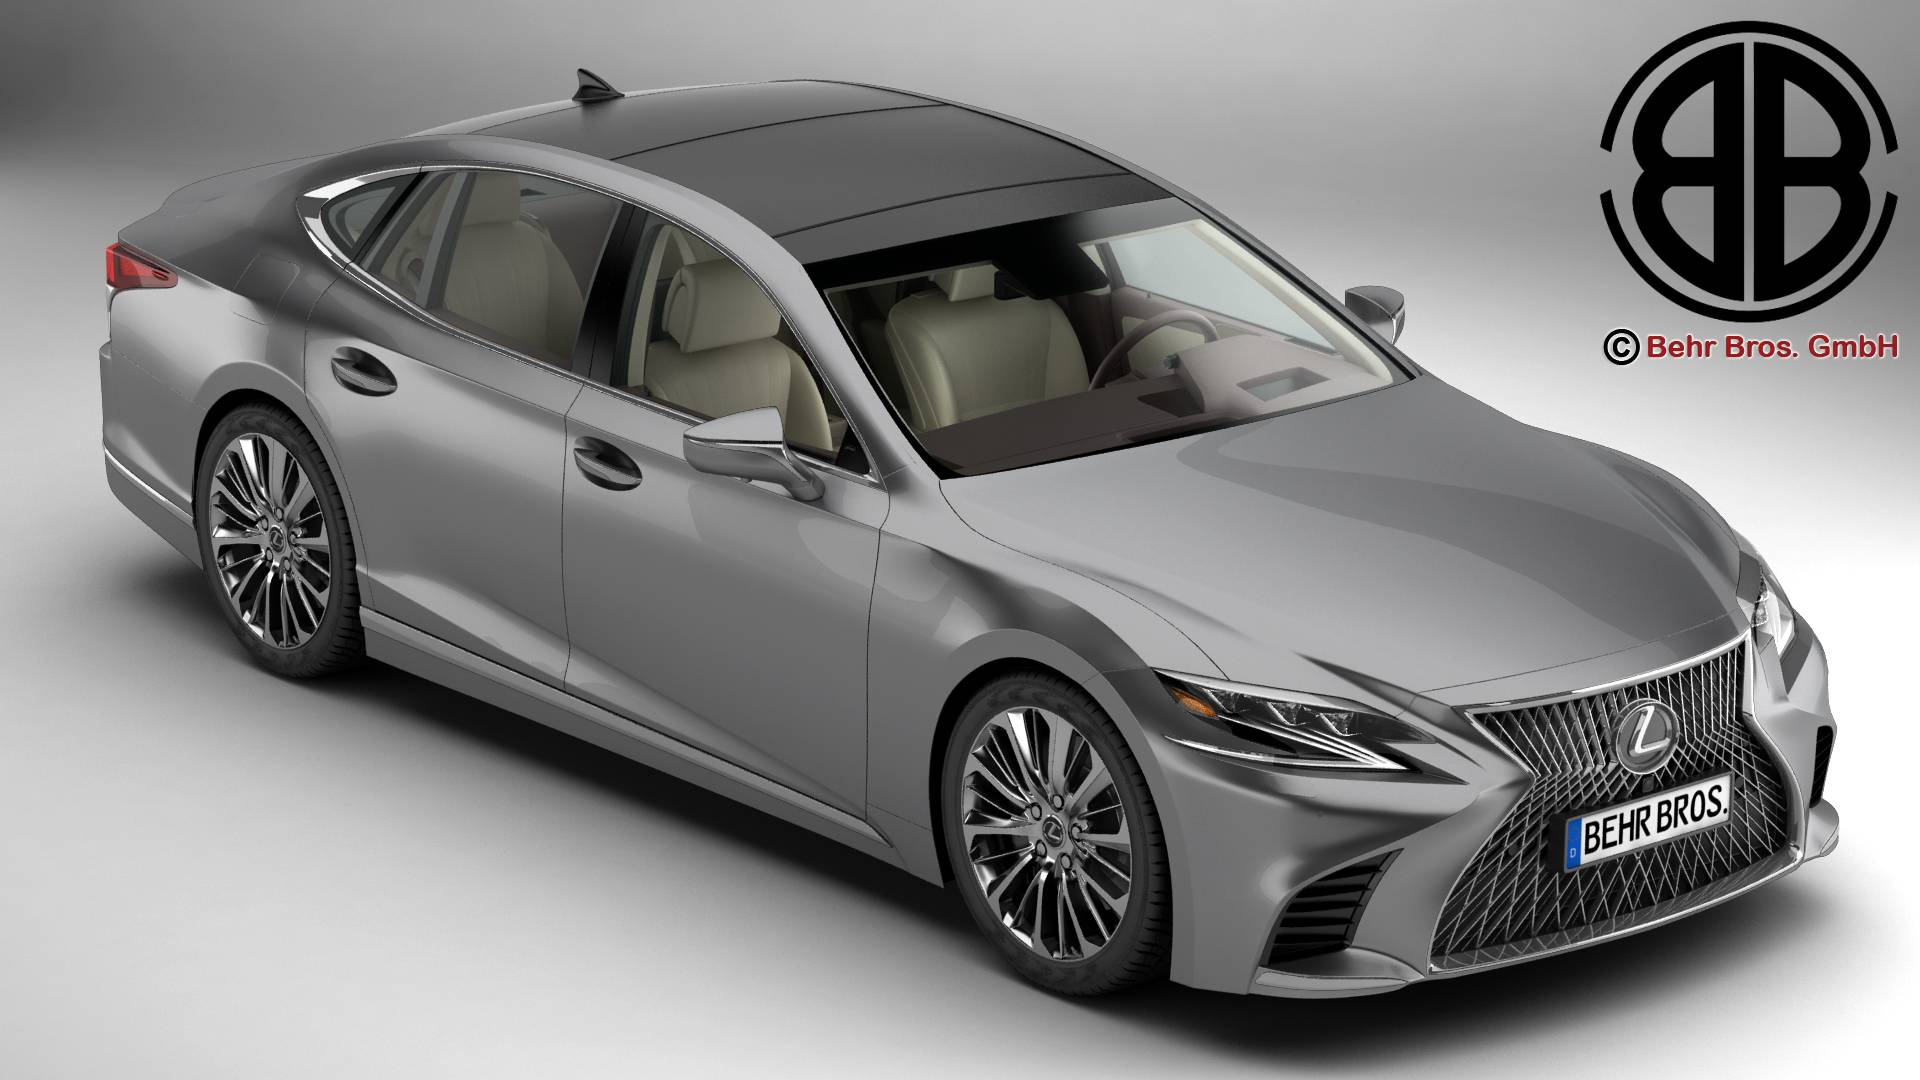 lexus ls 500 2018 3d model 3ds max fbx c4d le do thoil 251510